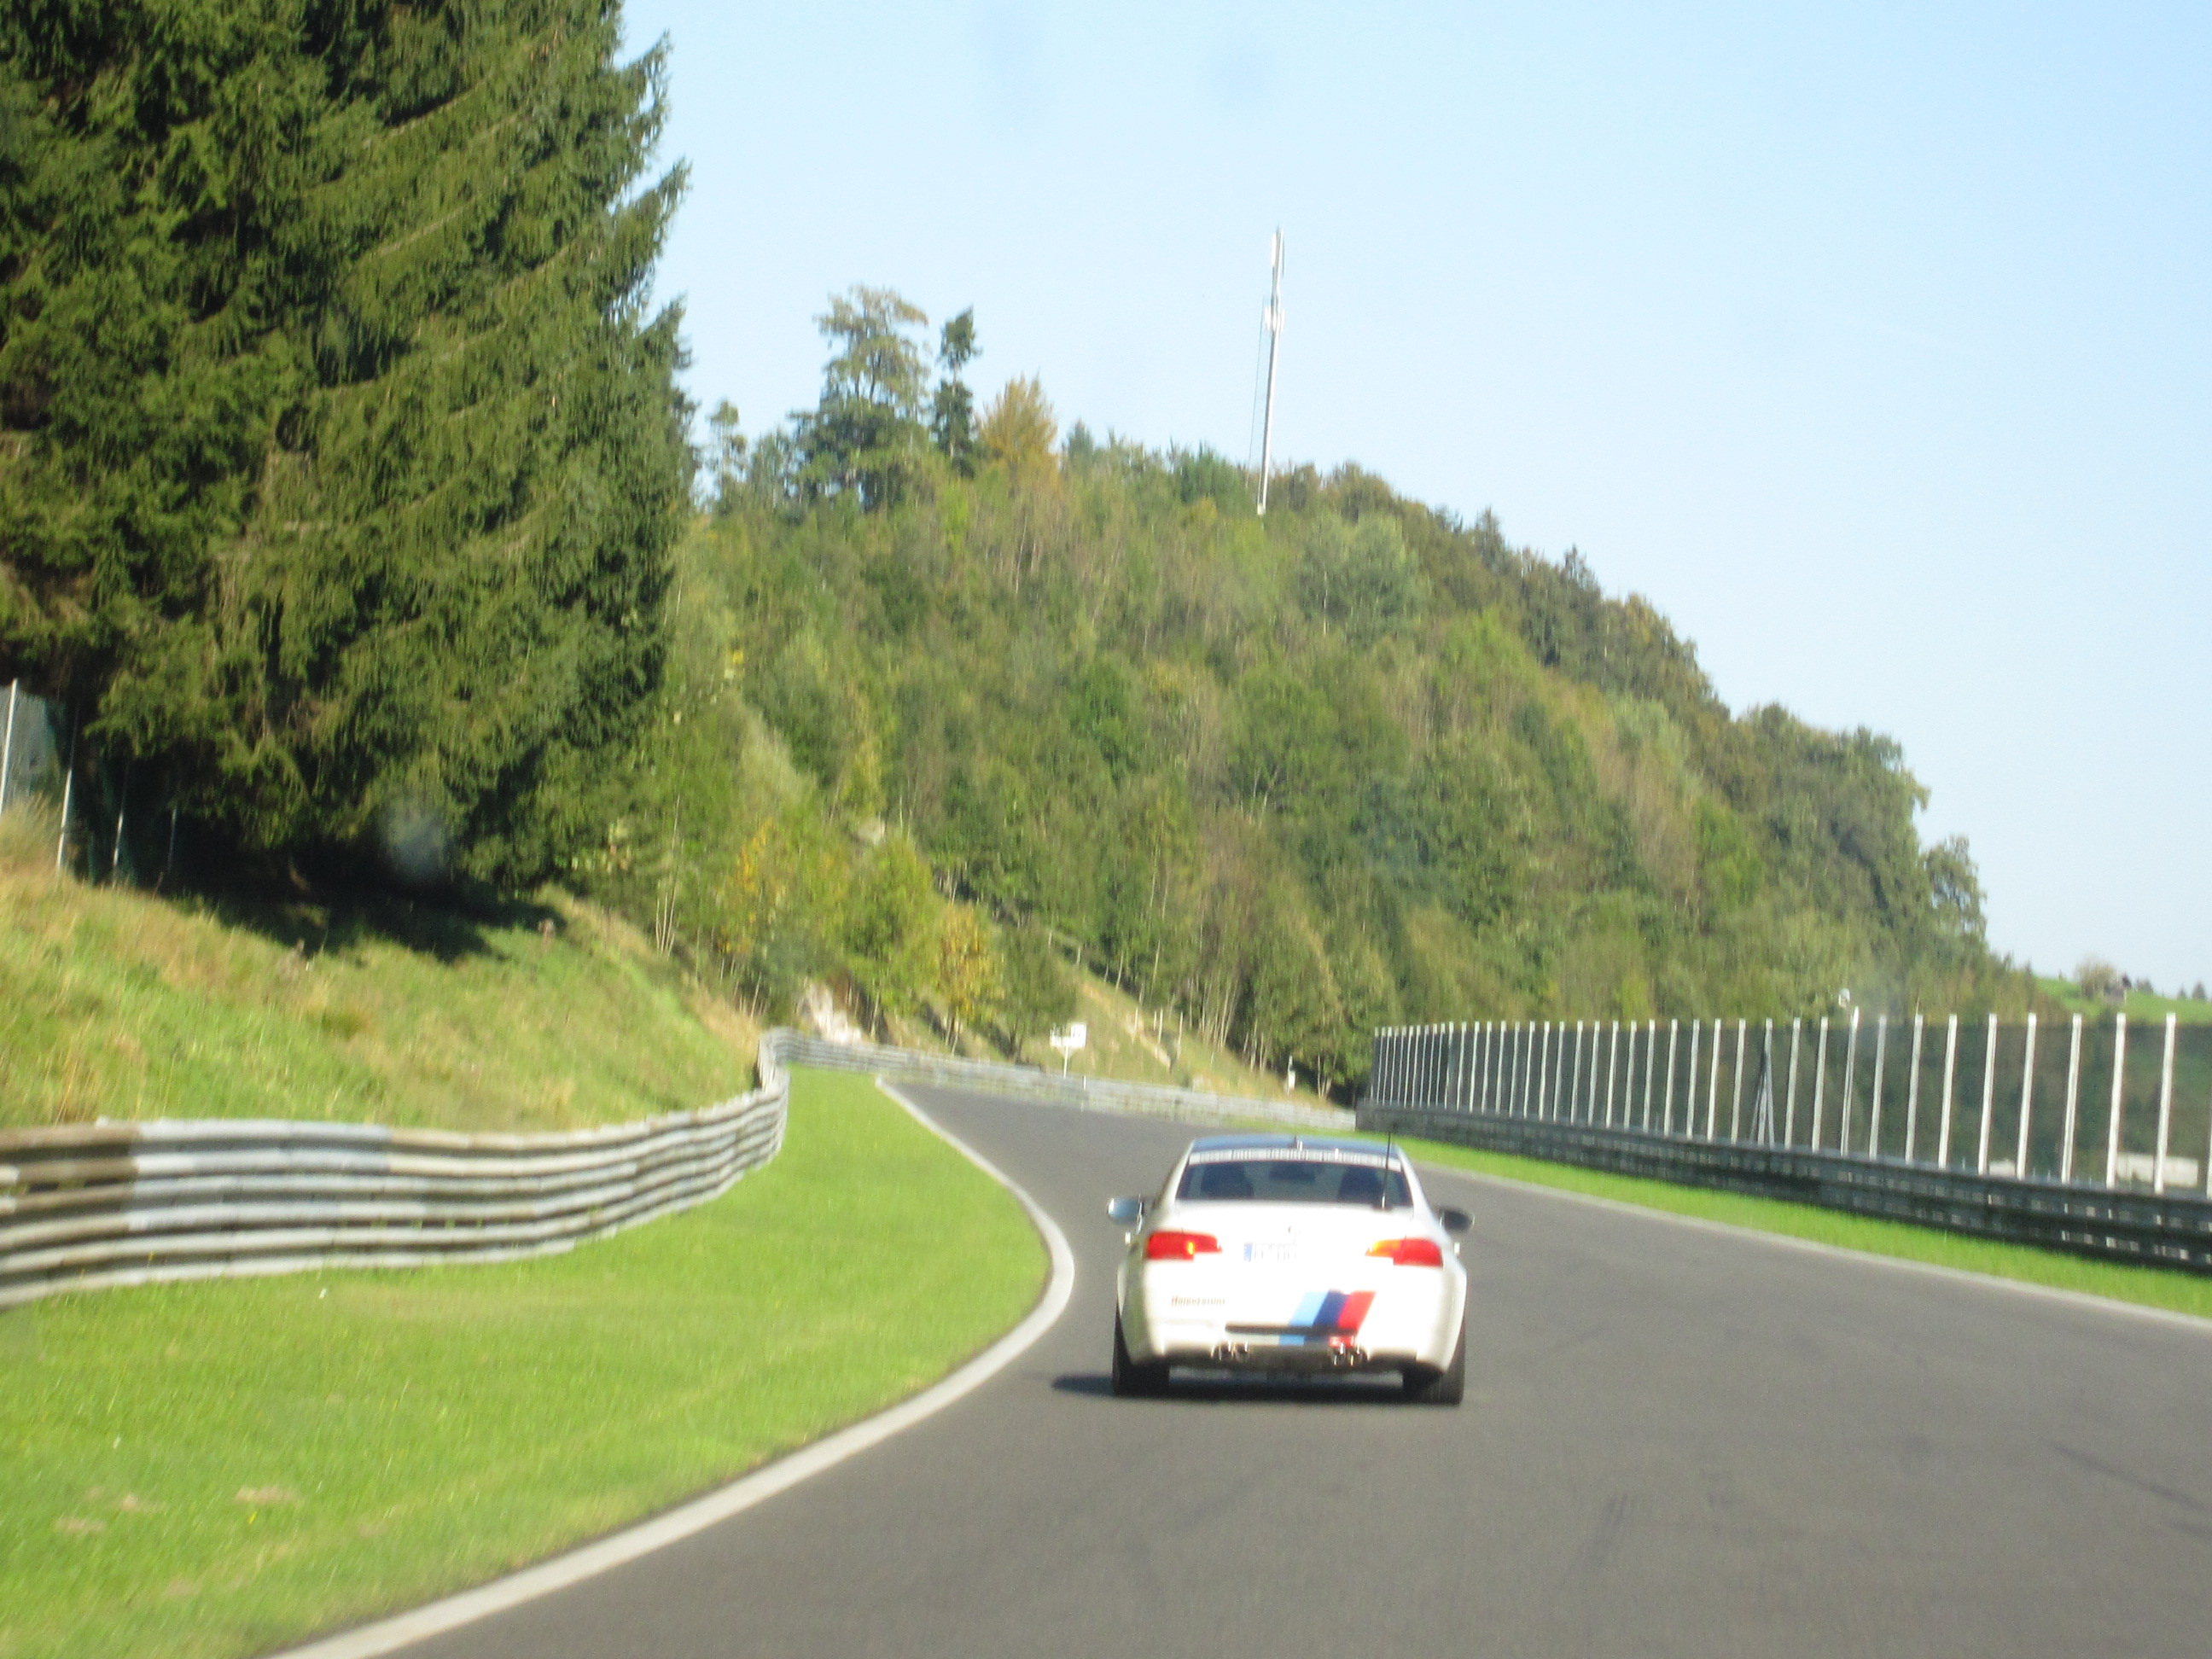 Saltzburgring [With the new BMW M5 F10 Twin Turbo chasing BMW M3 Competition Package]-img_2452.jpg